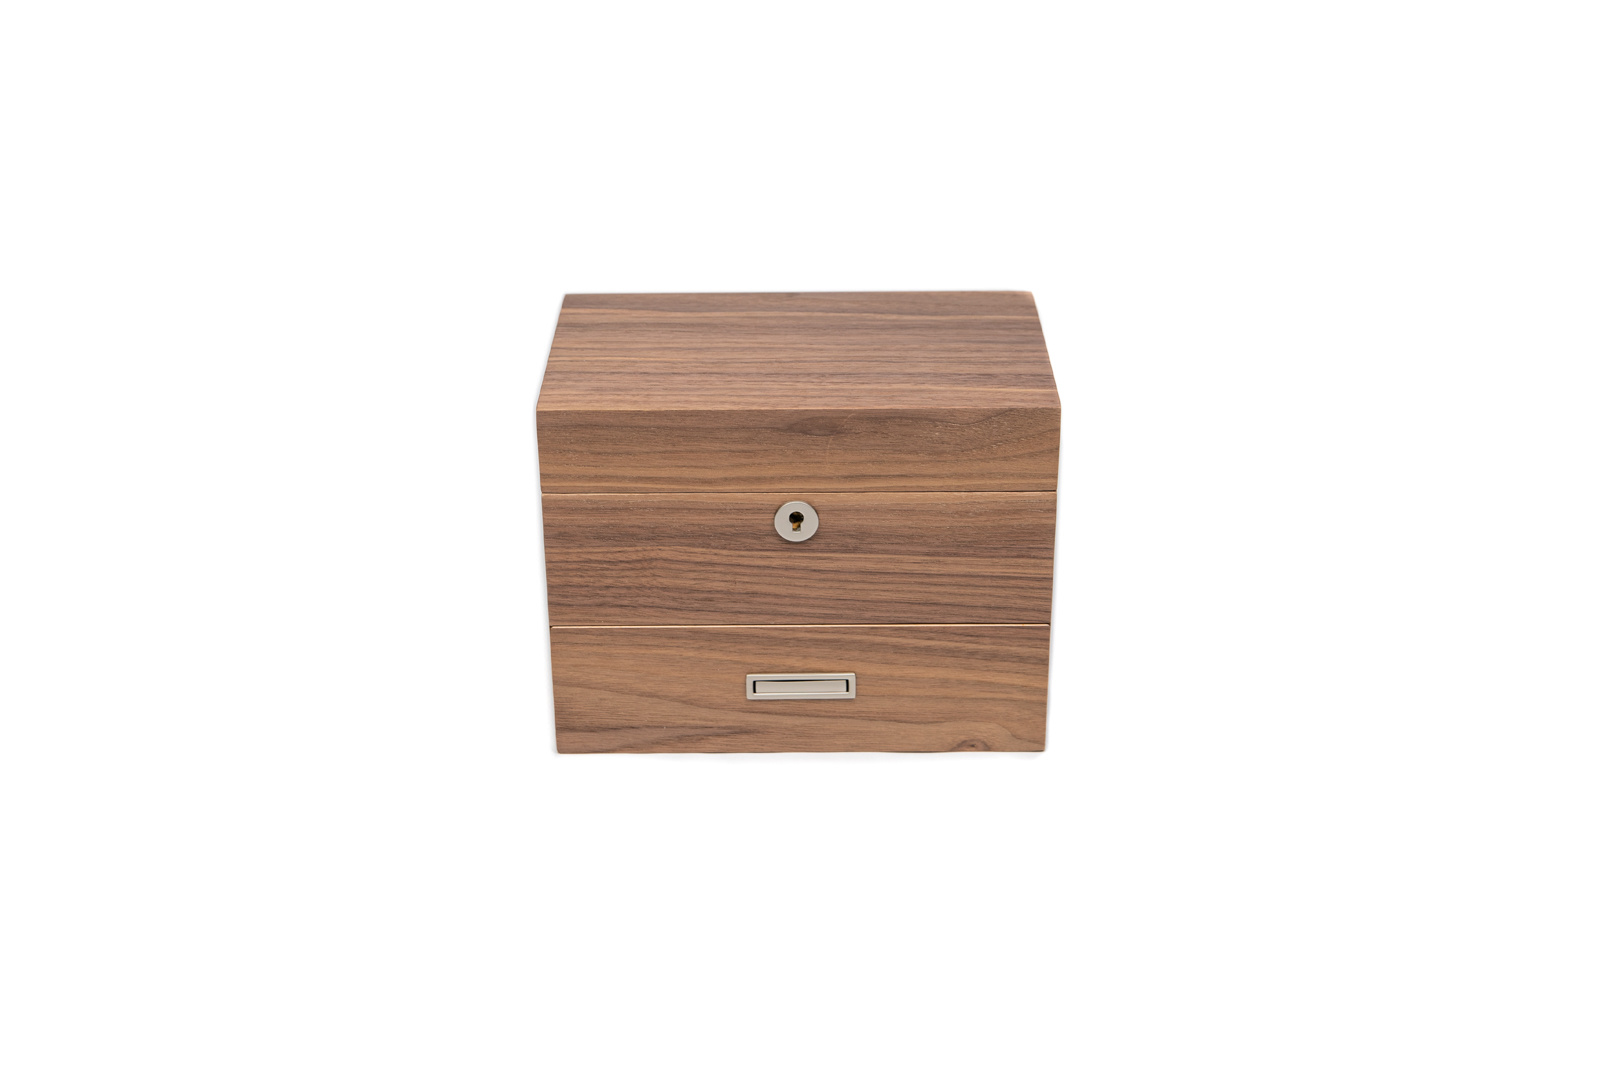 2-Strain Storage Box (with drawer) - Walnut